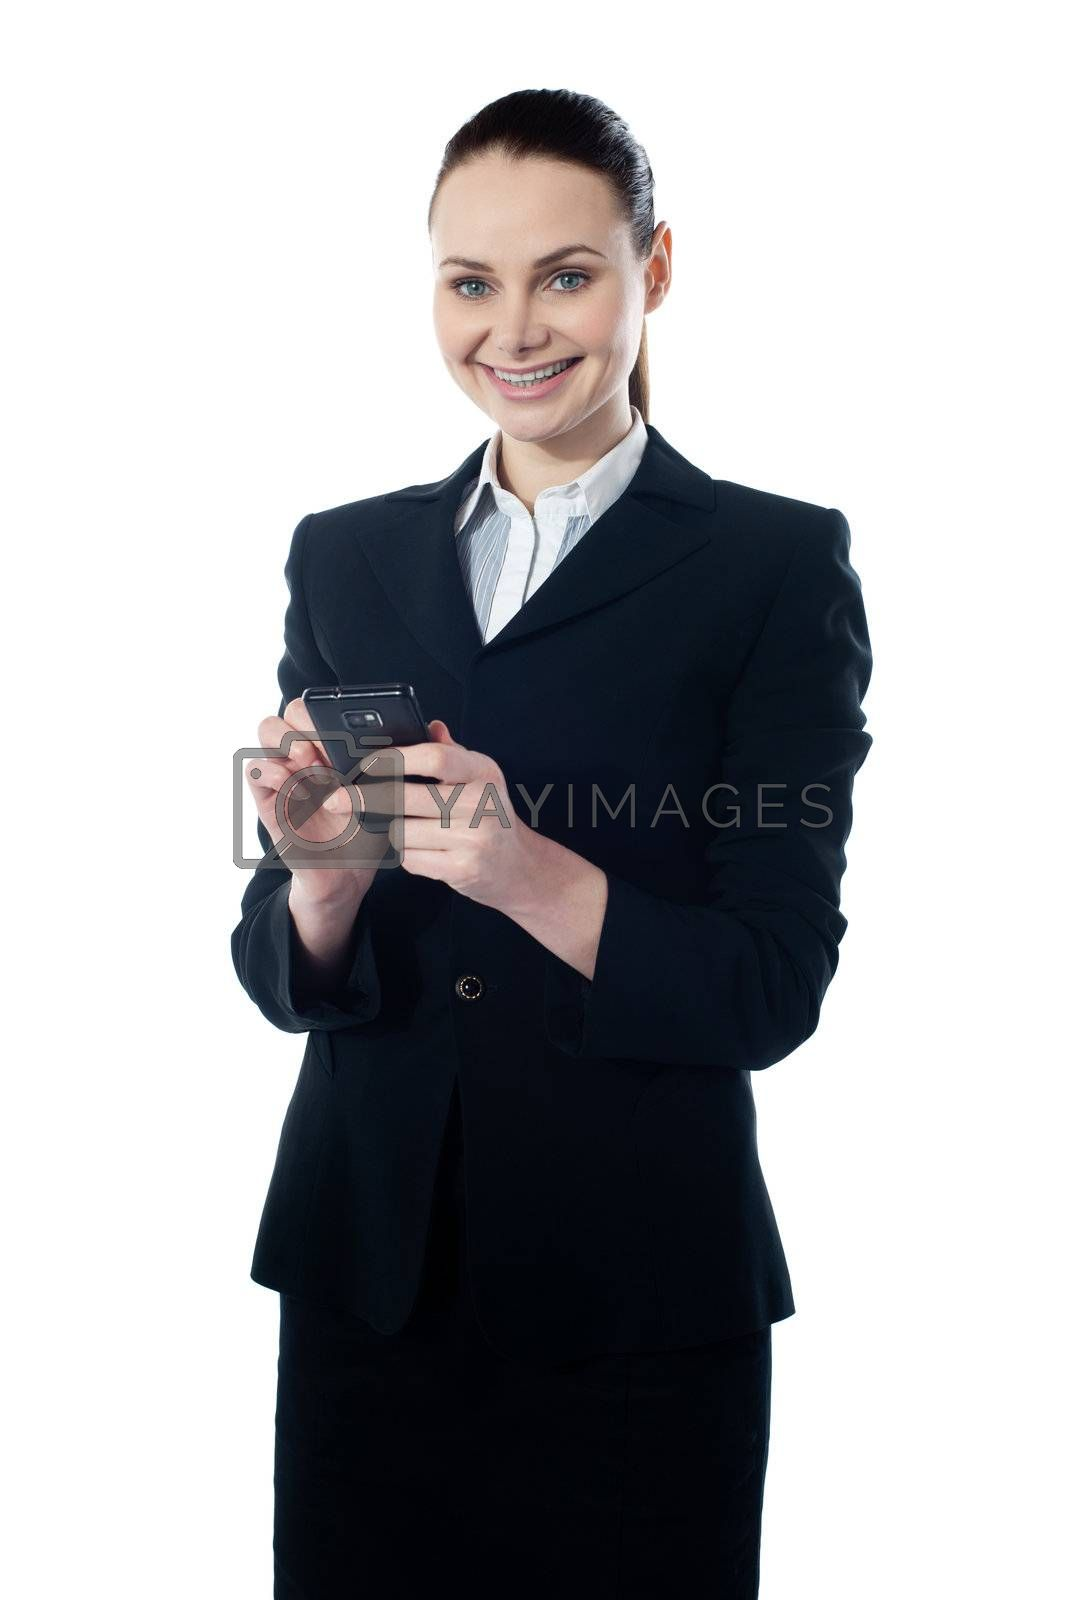 Corporate lady using mobile phone, sending message